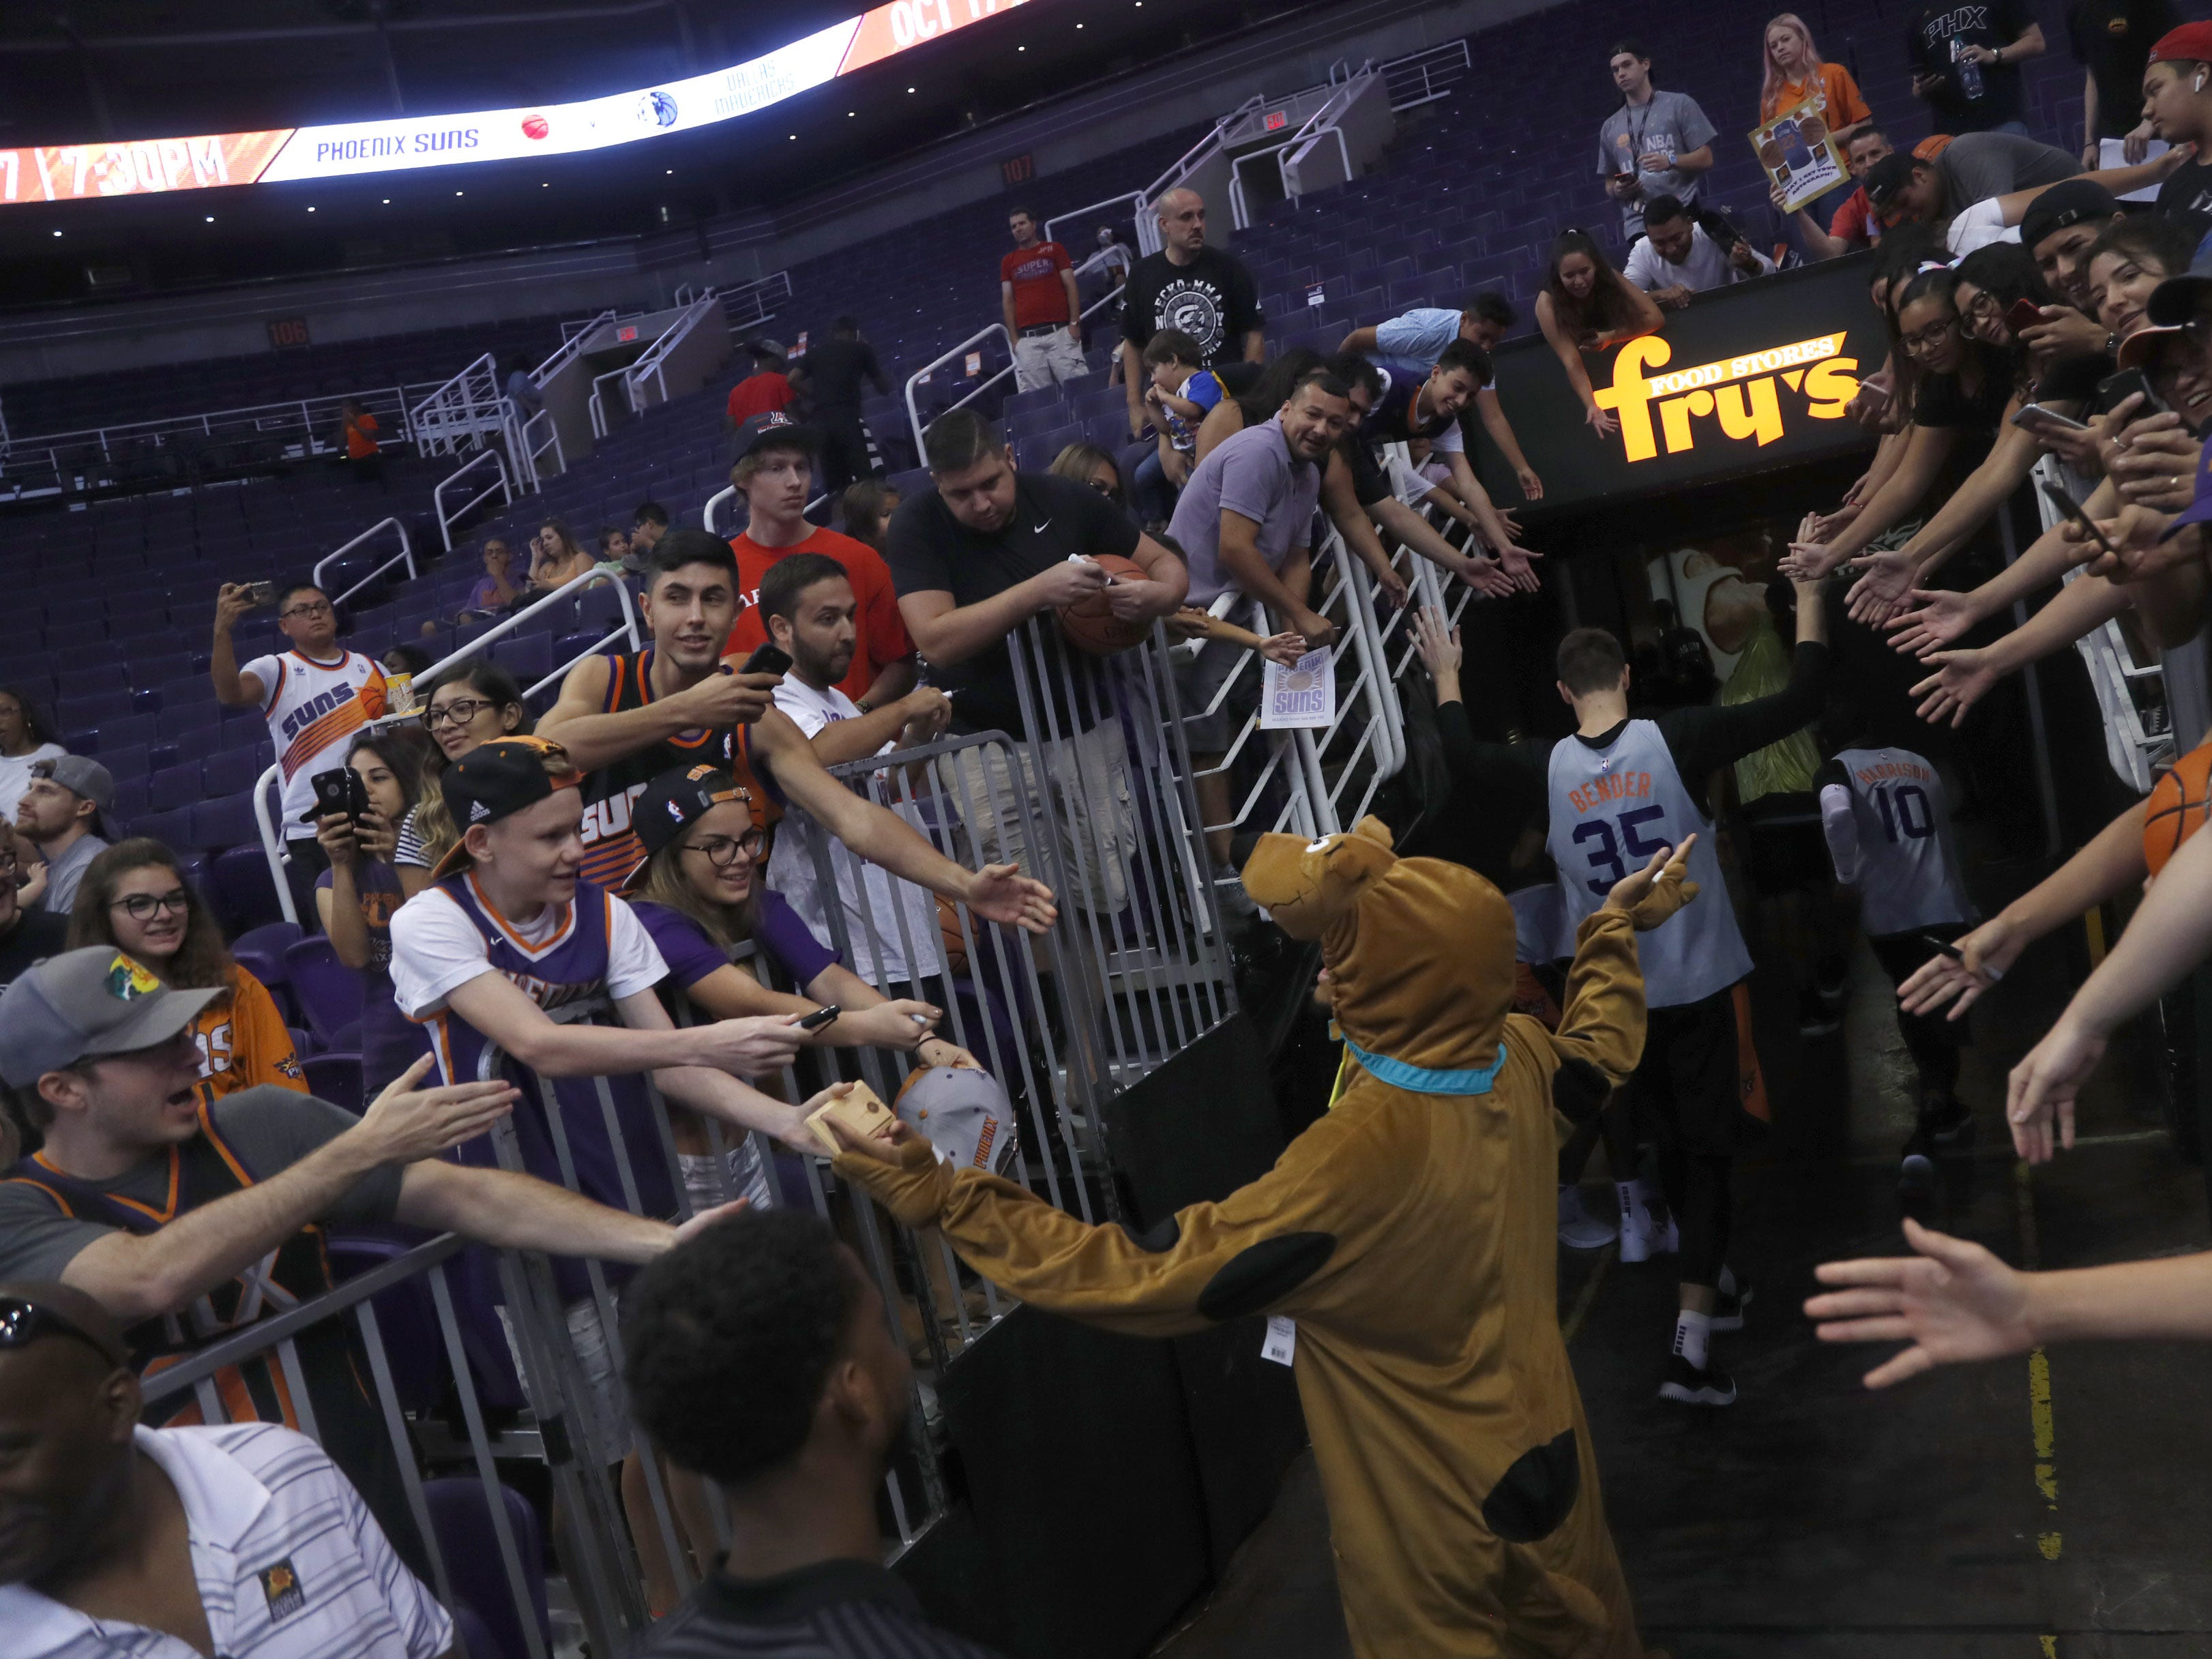 Suns Ellie Okobo, wearing a Scooby Doo outfit makes his way off the court during an Open Practice at Talking Stick Resort Arena in Phoenix, Ariz. on Sept. 29, 2018.